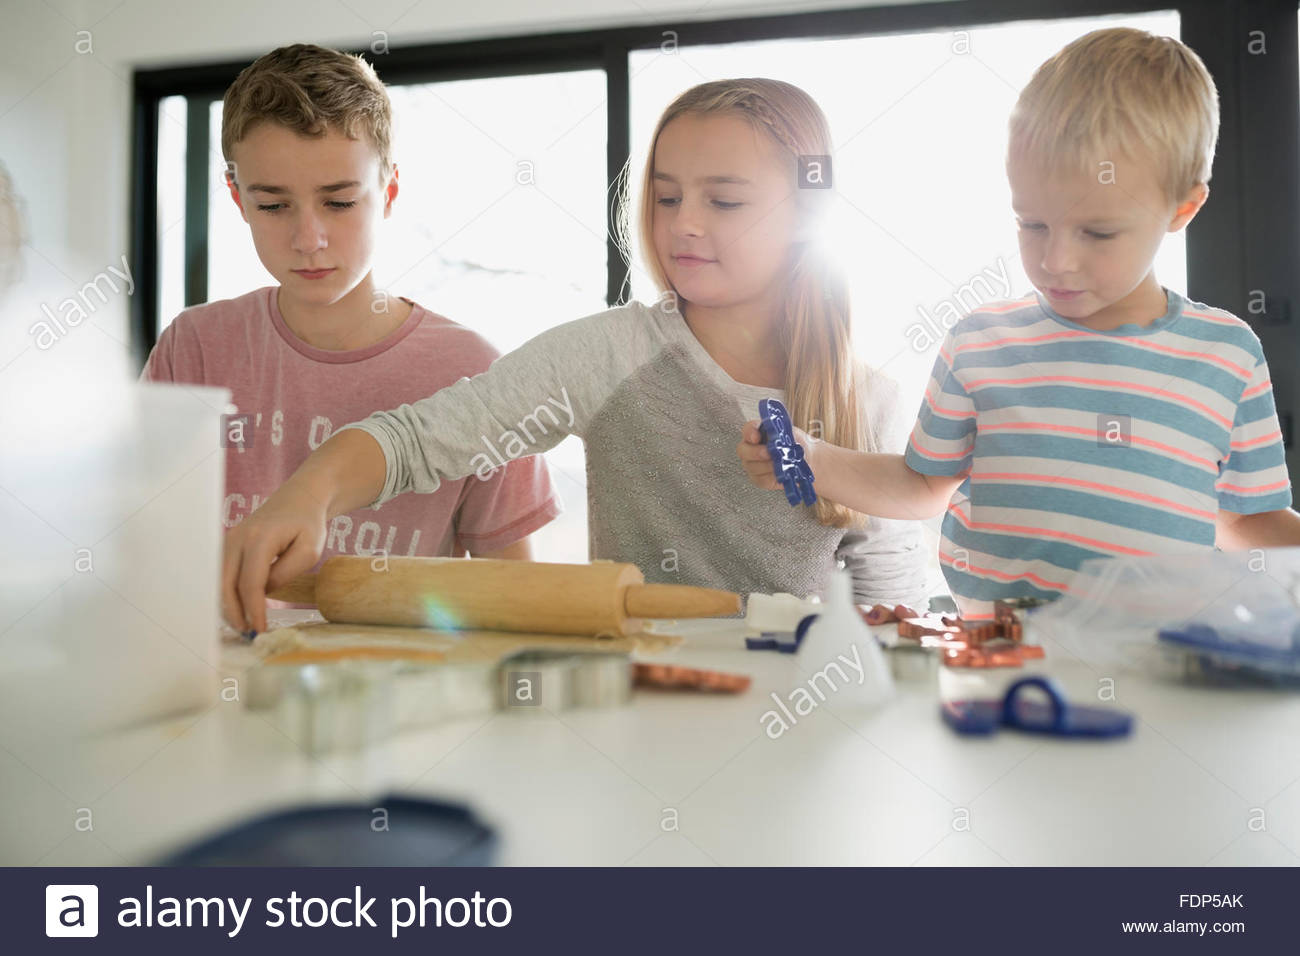 Brothers and sister baking cookies - Stock Image